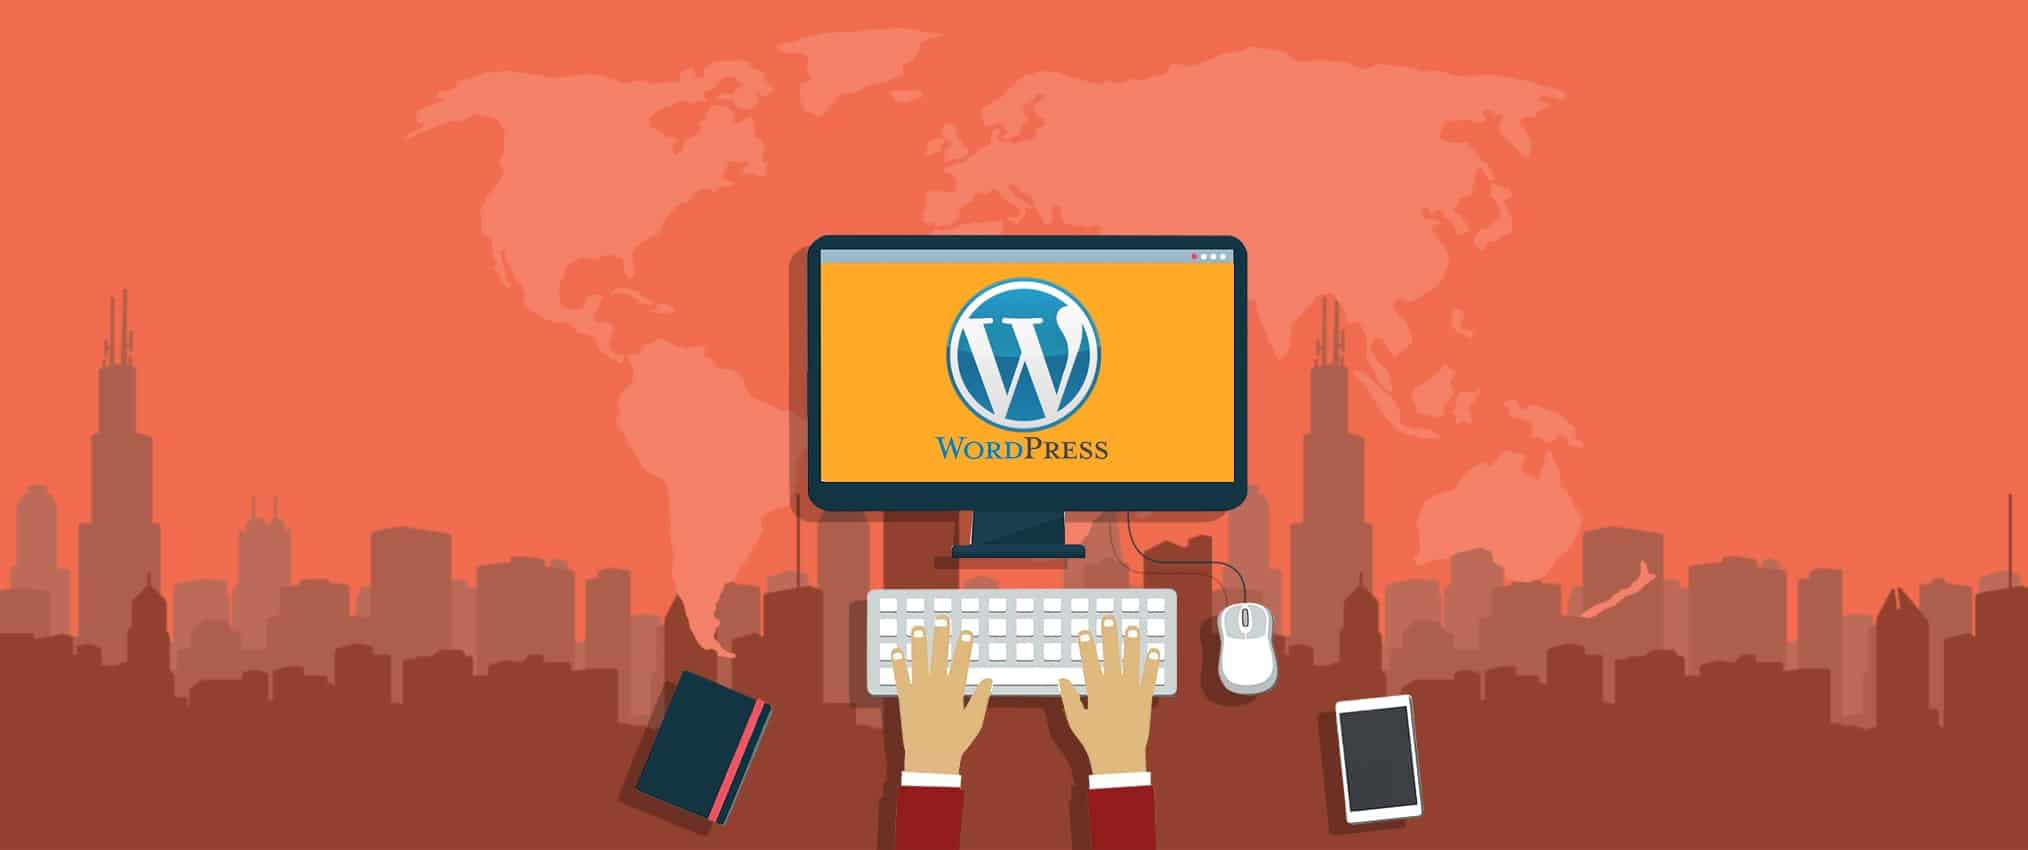 6 Reasons Why You Should Use Wordpress For Your Business Website